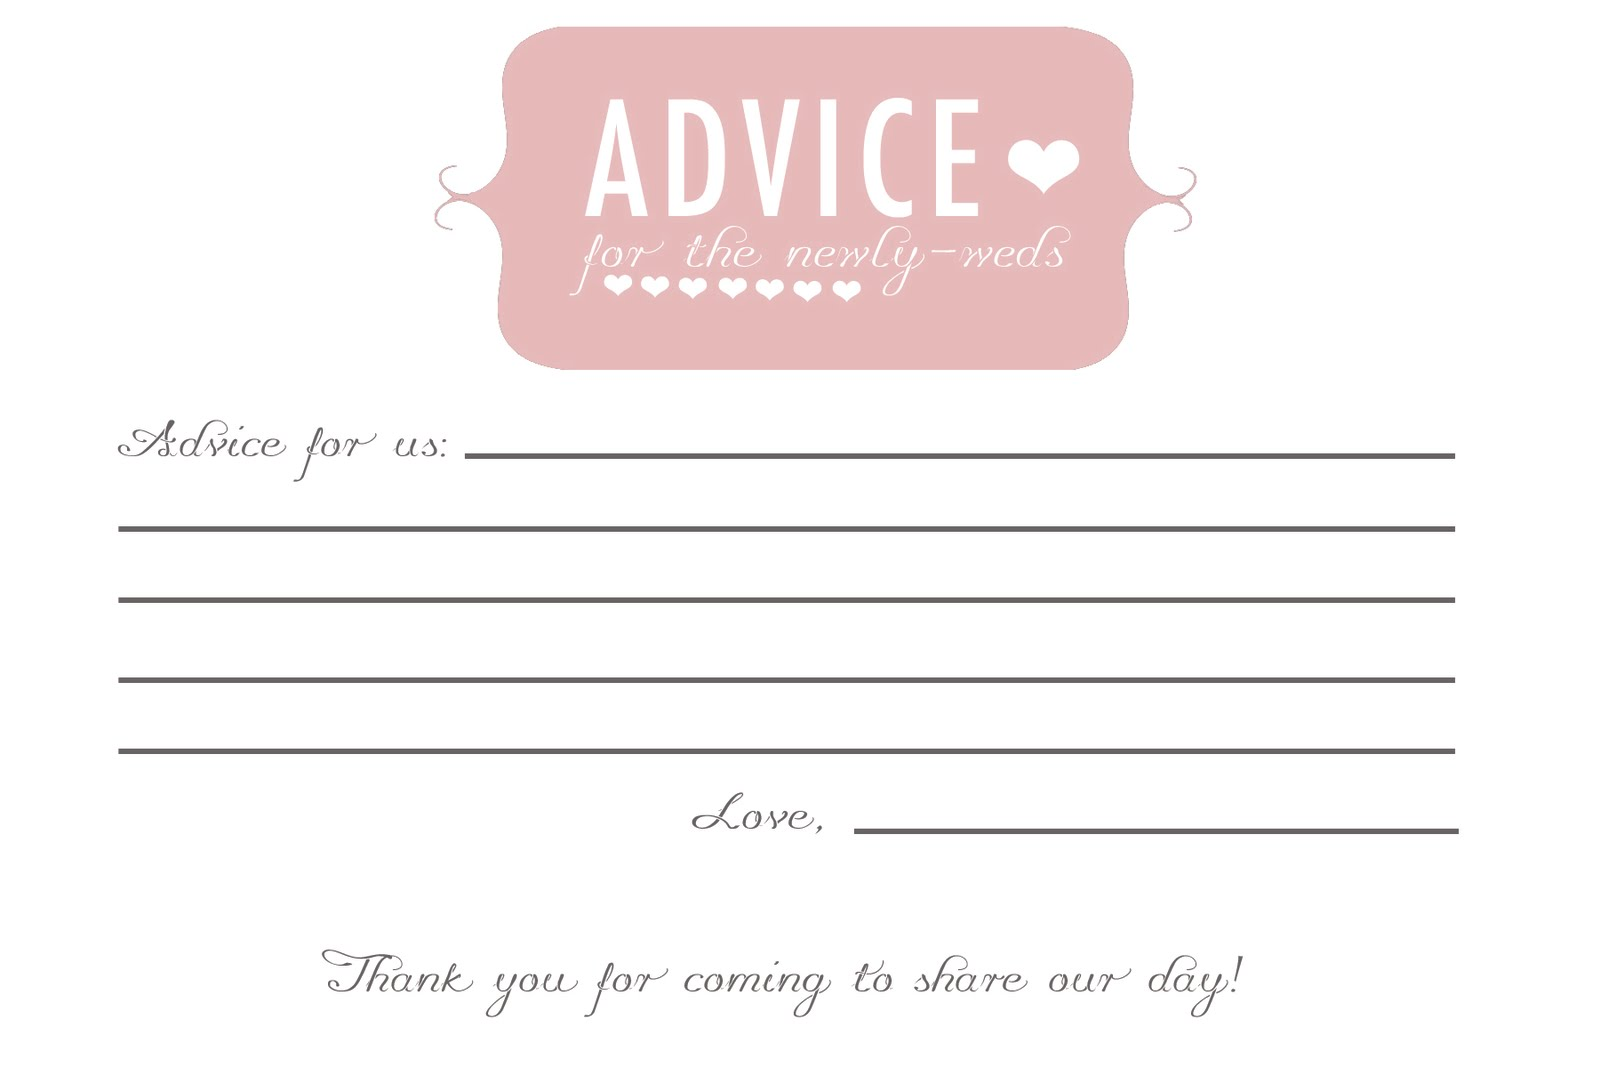 Did Anyone Do Advice Cards Or Prediction Cards For Guests